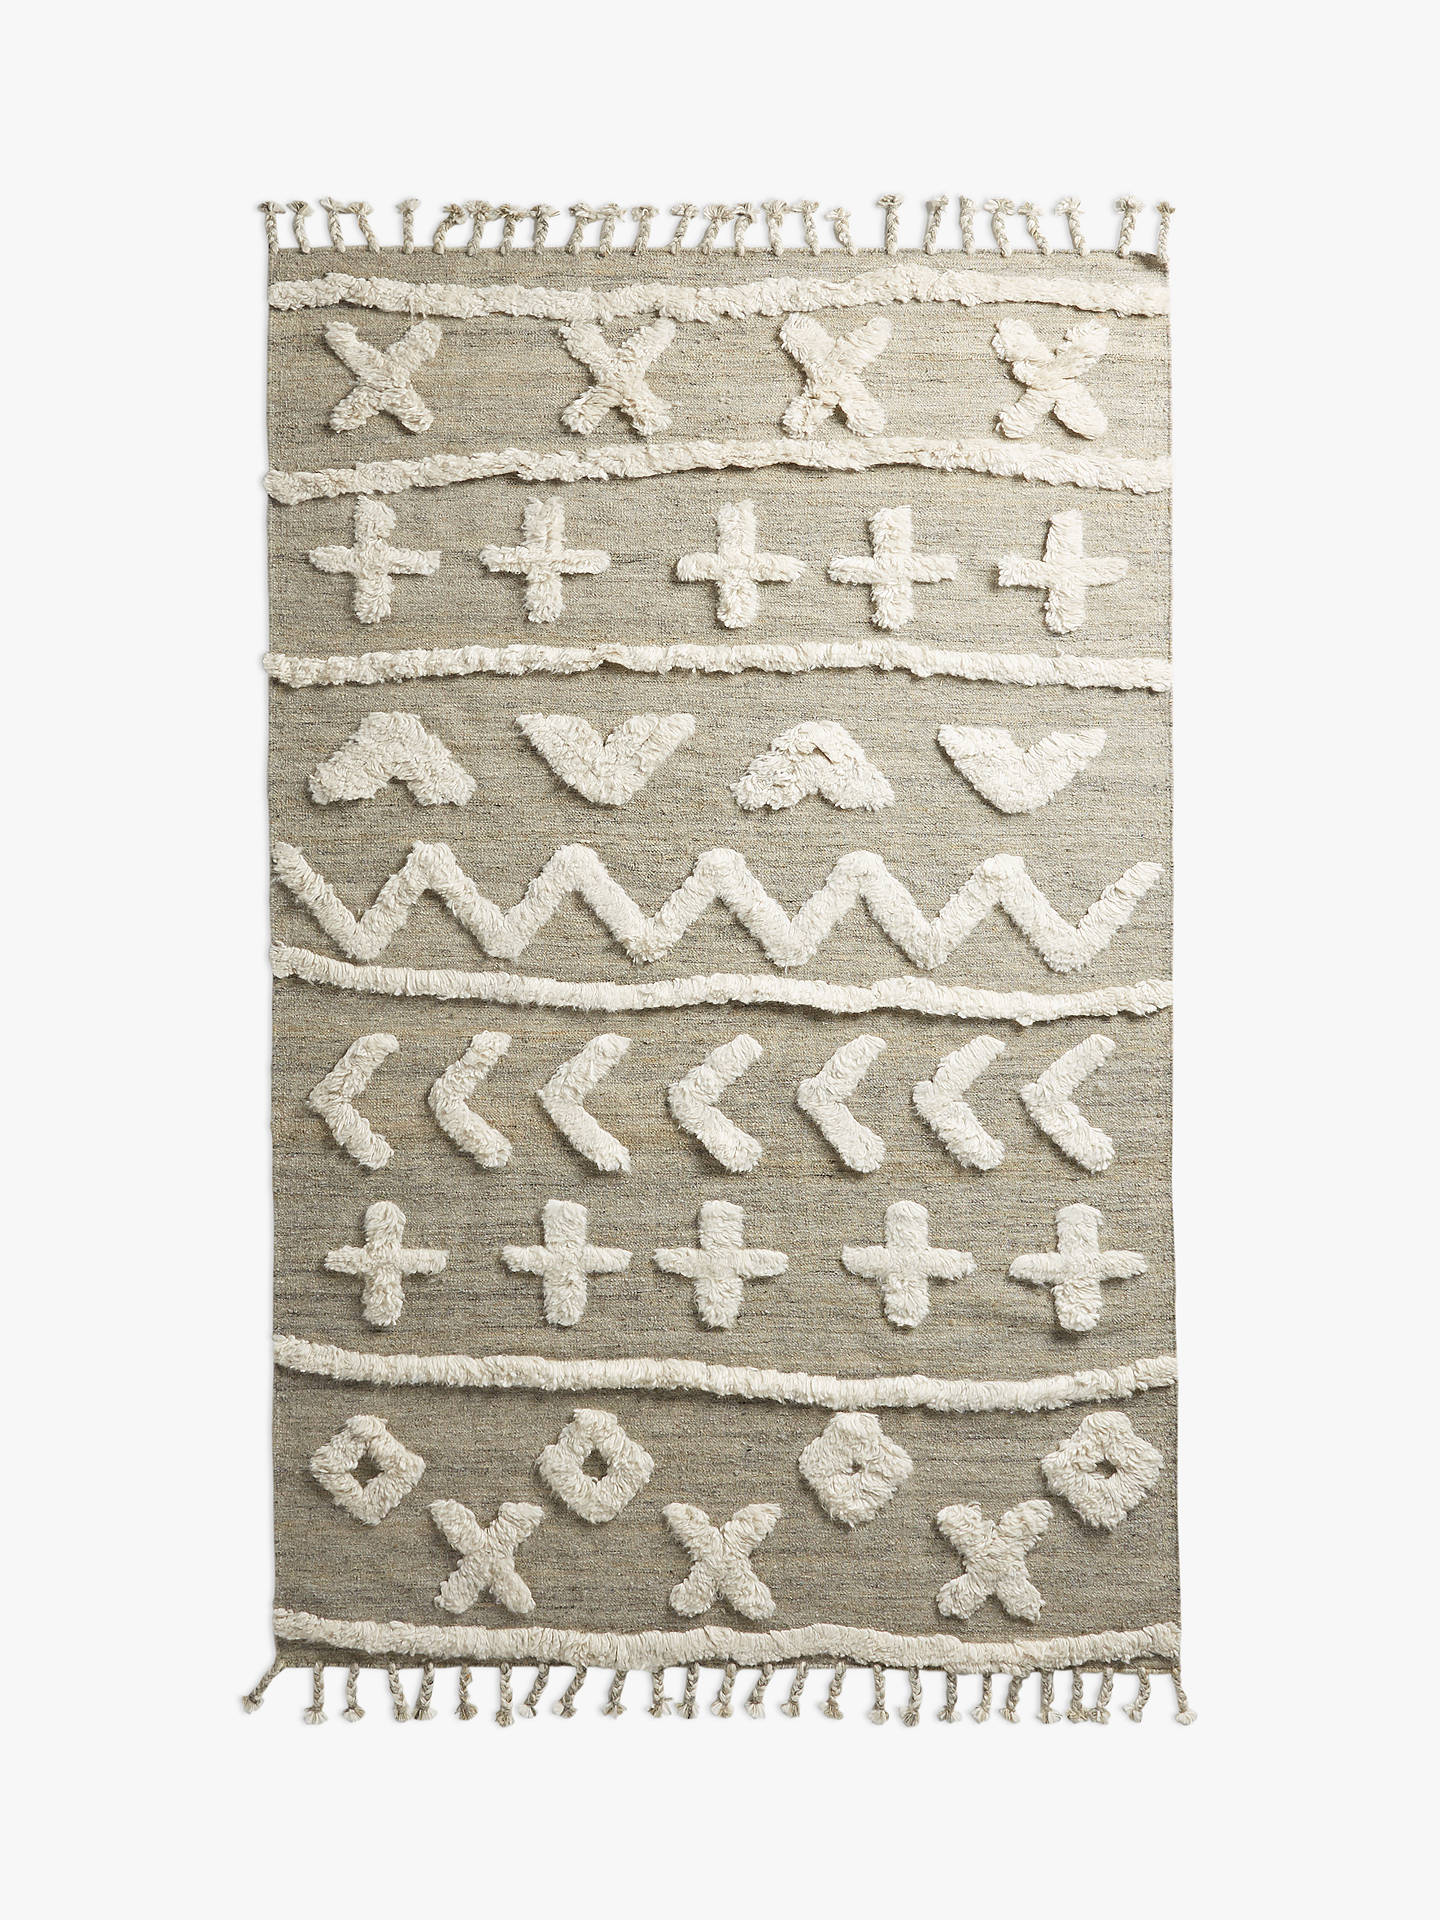 Buy Anthropologie Minna Tufted Wool Rug, L200 x W130cm Online at johnlewis.com